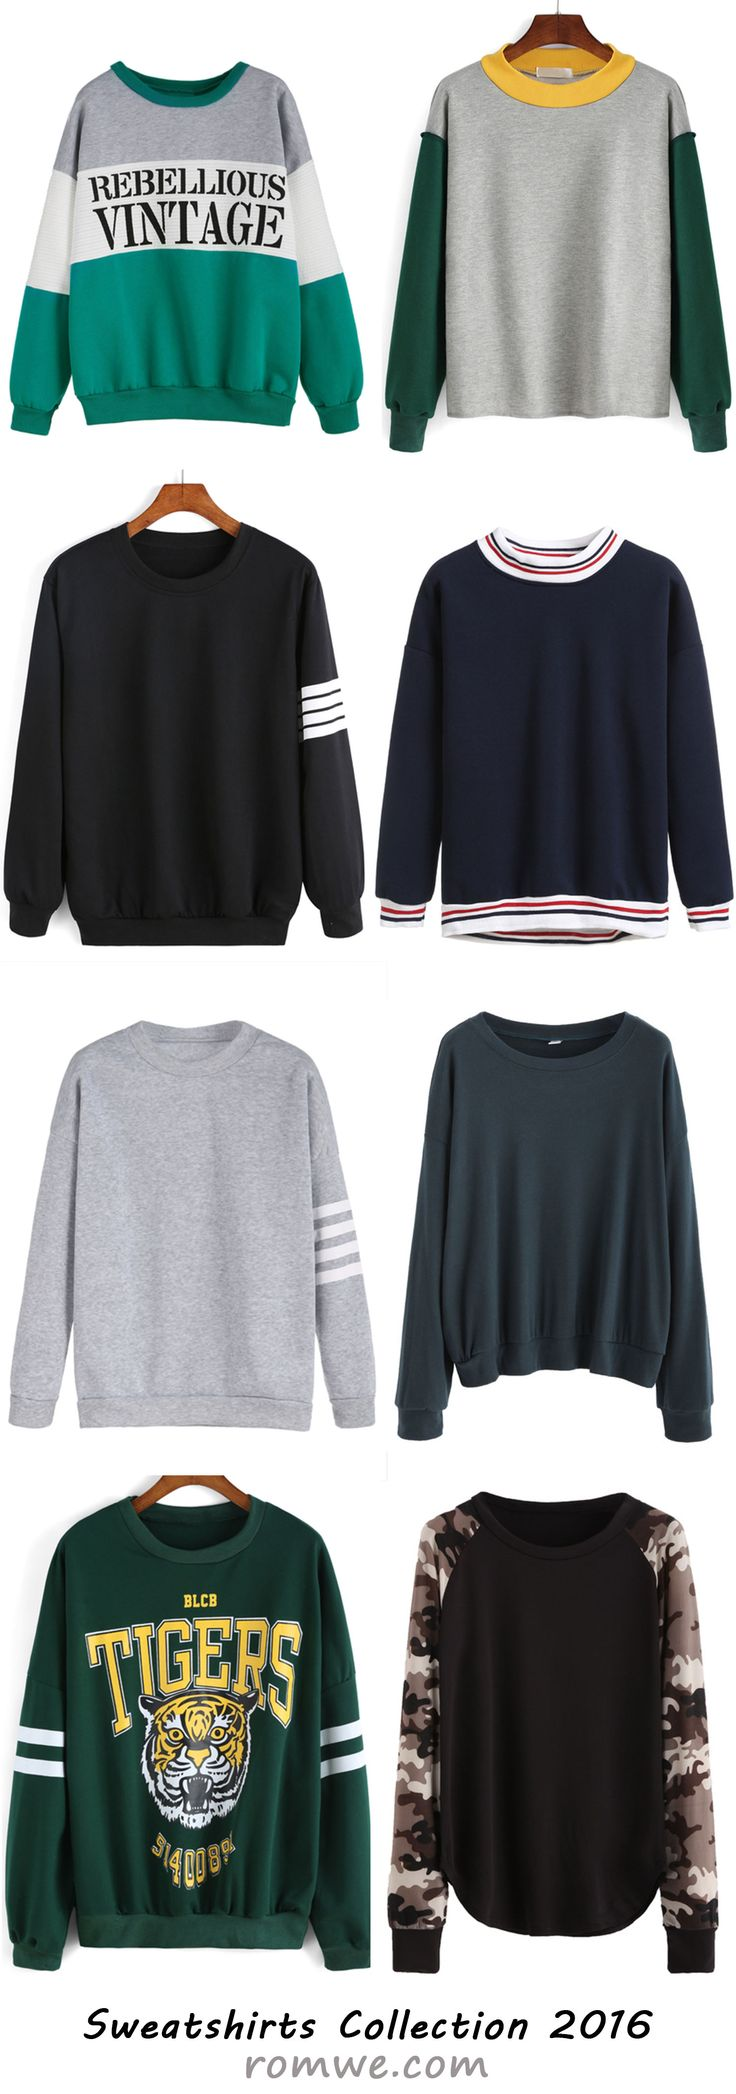 Romwe Sweatshirts Collection 2016